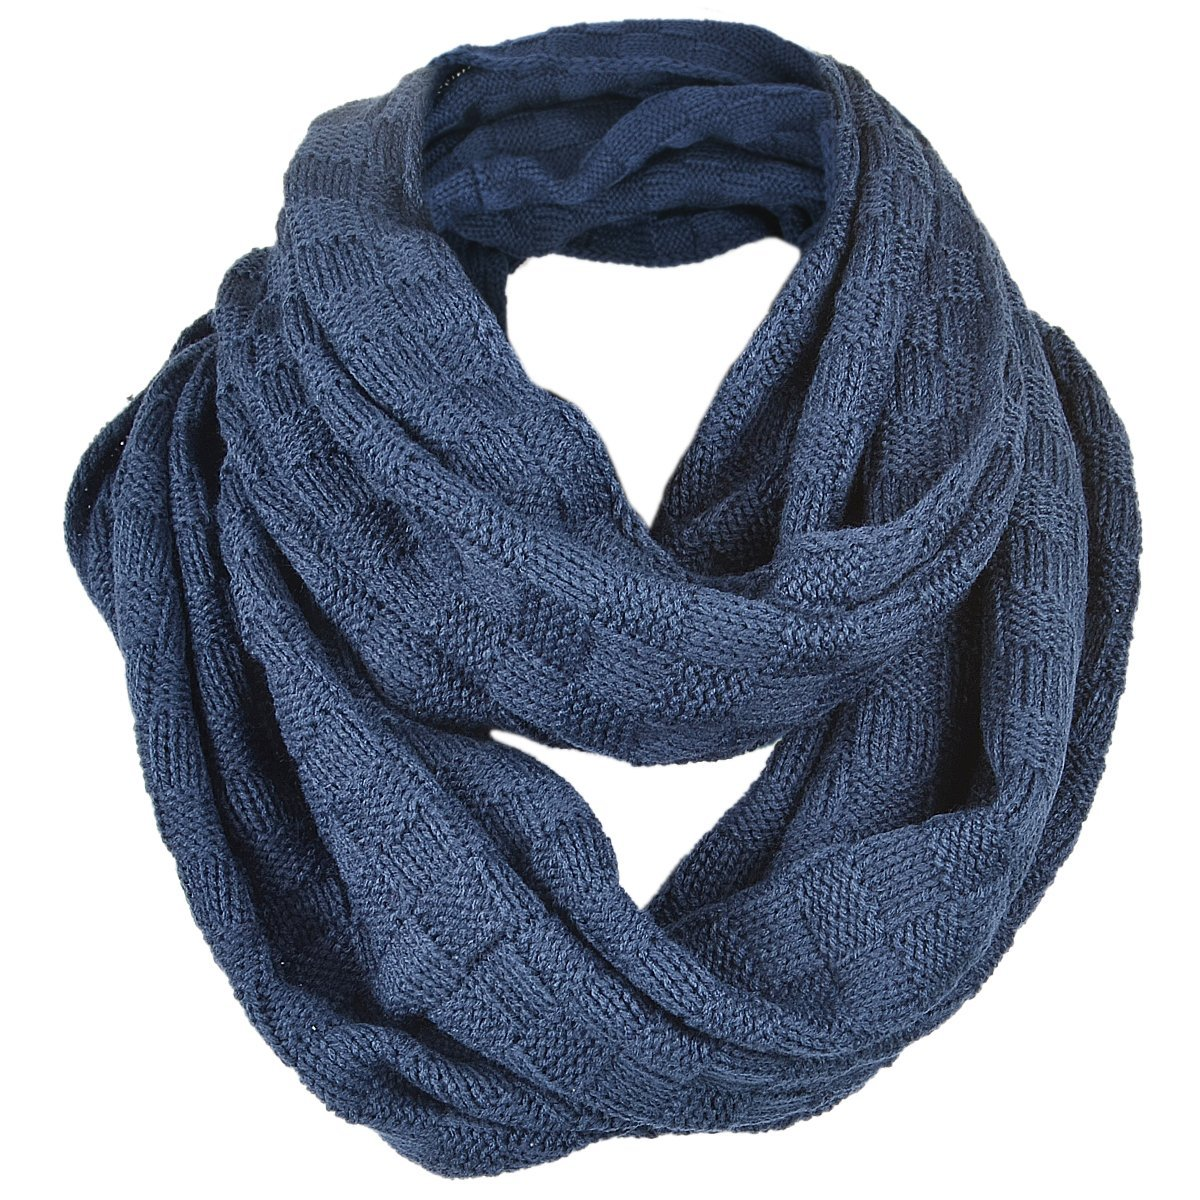 Unisex Soft Knit Winter Infinity Scarf (Multicolor Choose) FORBUSITE E5081b-Navy